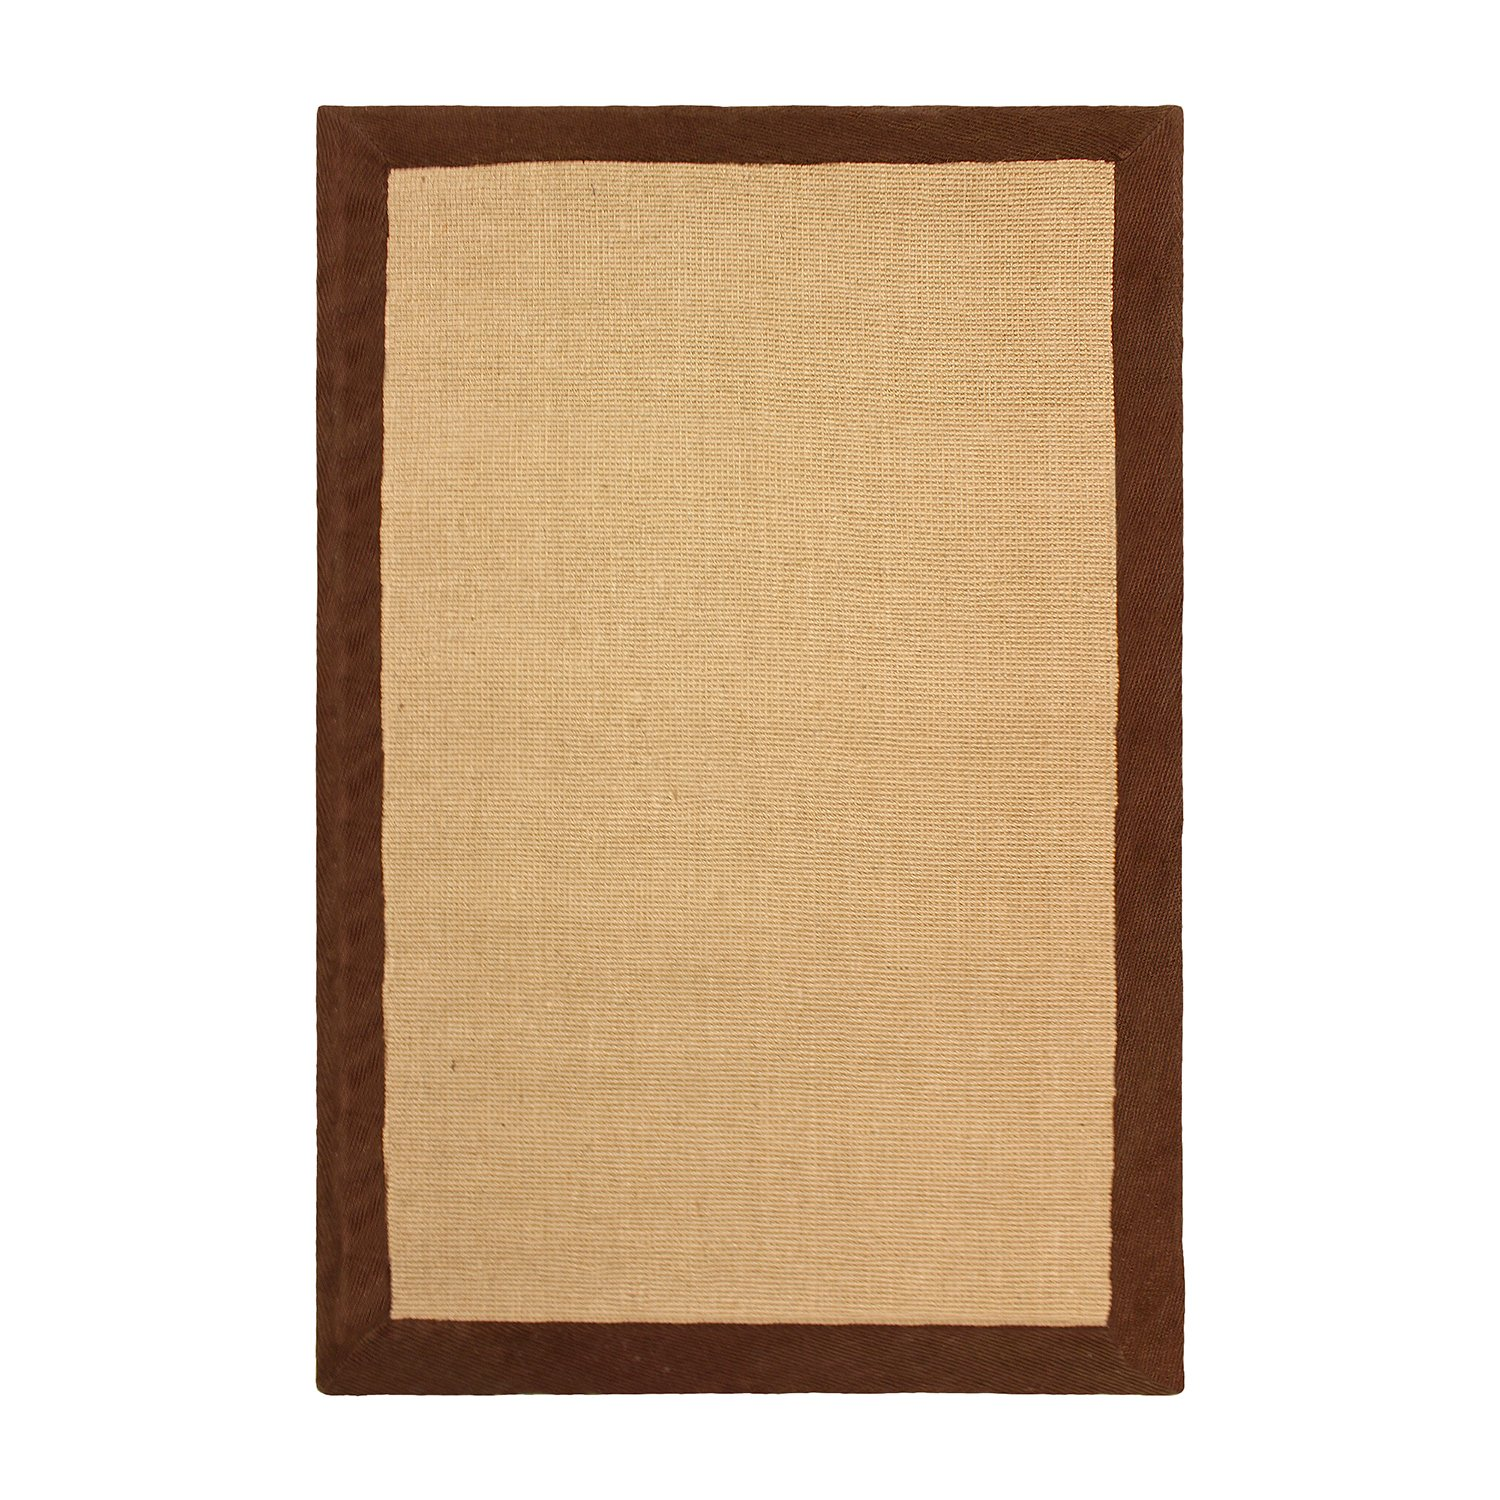 2' x 3' Green Jute Runner Rug, Natural Fiber Collection Hand-Woven Jute Carpet with a Beautiful Colored Border and Non-Slip Rubber Backing, 2-feet by 3-feet Blue Nile Mills 2X3RUG-CLASSIC-JUTE-GN